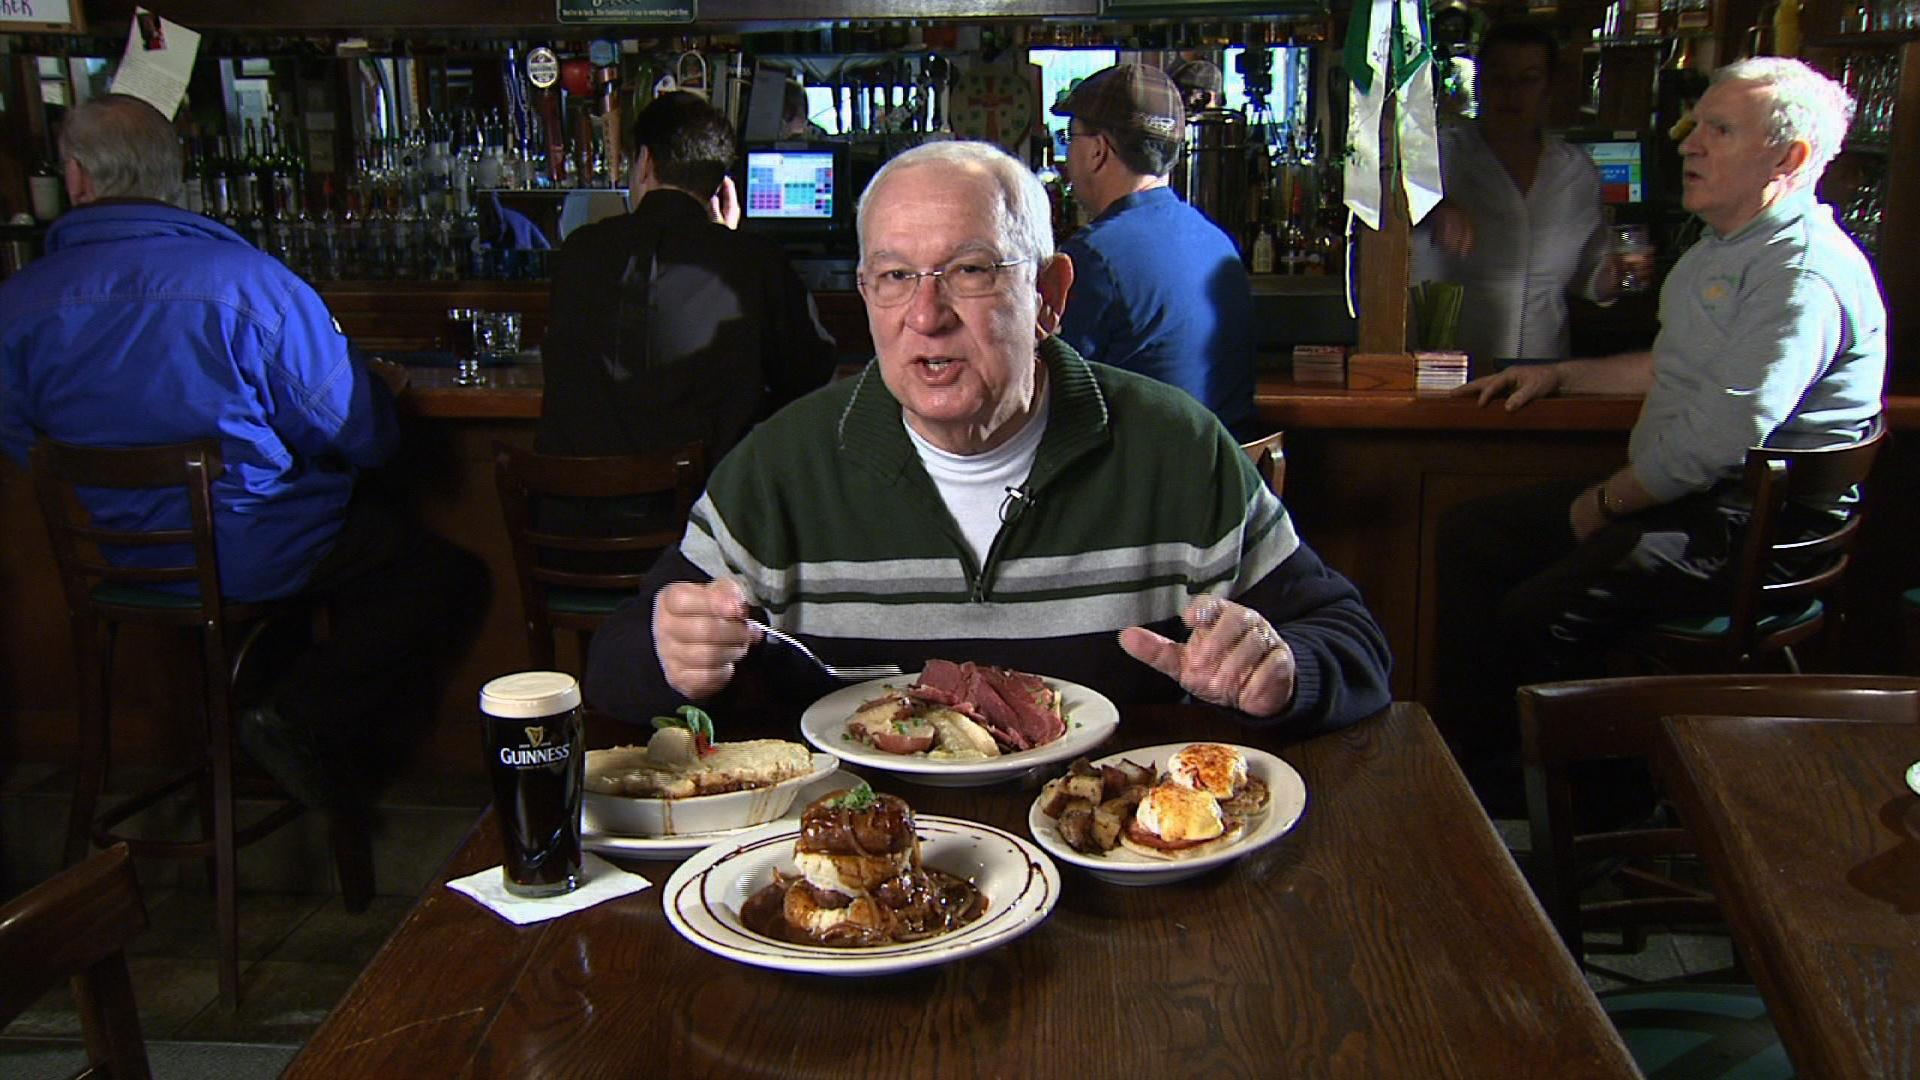 The Claddagh Restaurant and Pub image